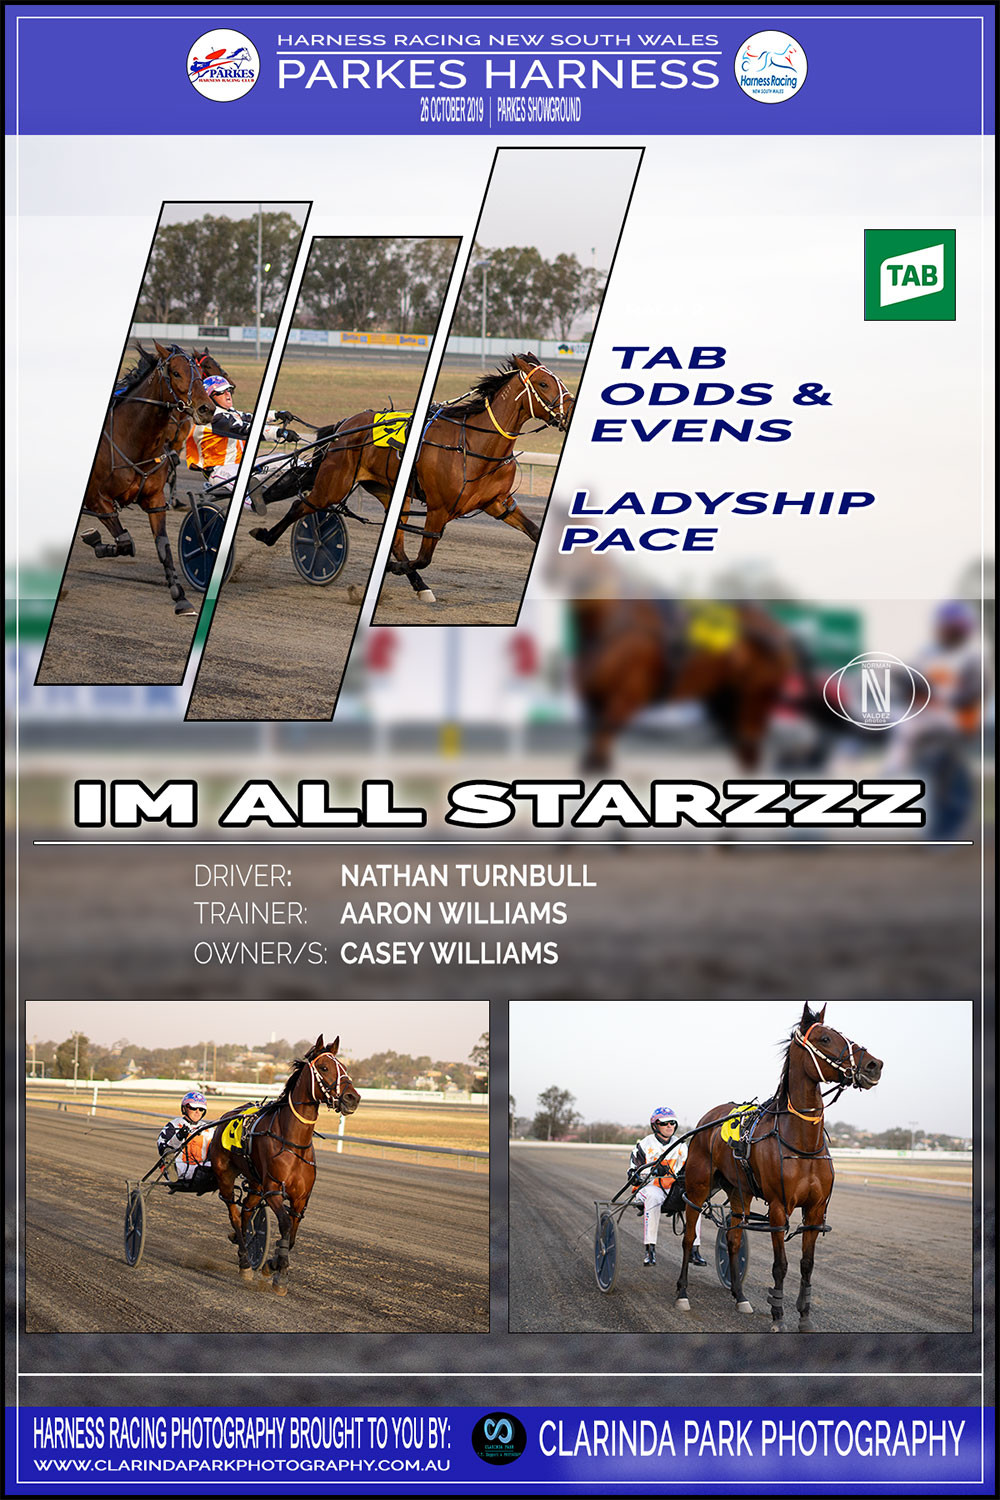 IM ALL STARZZZ Wins at Parkes Harness Racing Club | Trainer: Aaron Williams | Driver: Nathan Turnbull | Owner: Casey Williams